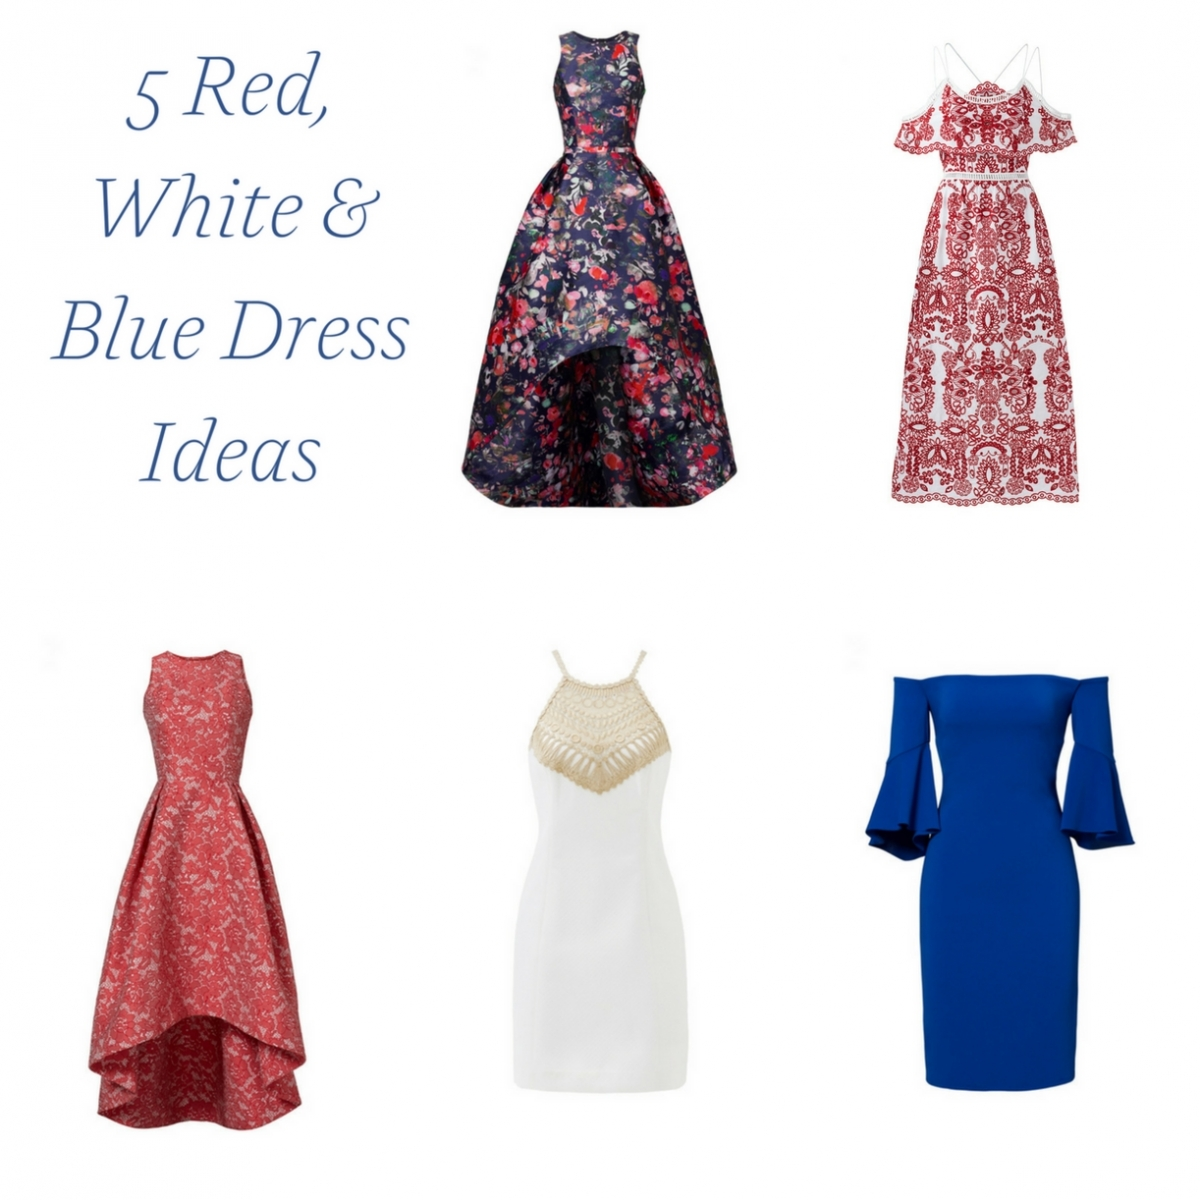 5 Red White & Blue Dress Ideas (for Rent!) » Hill City Bride ...